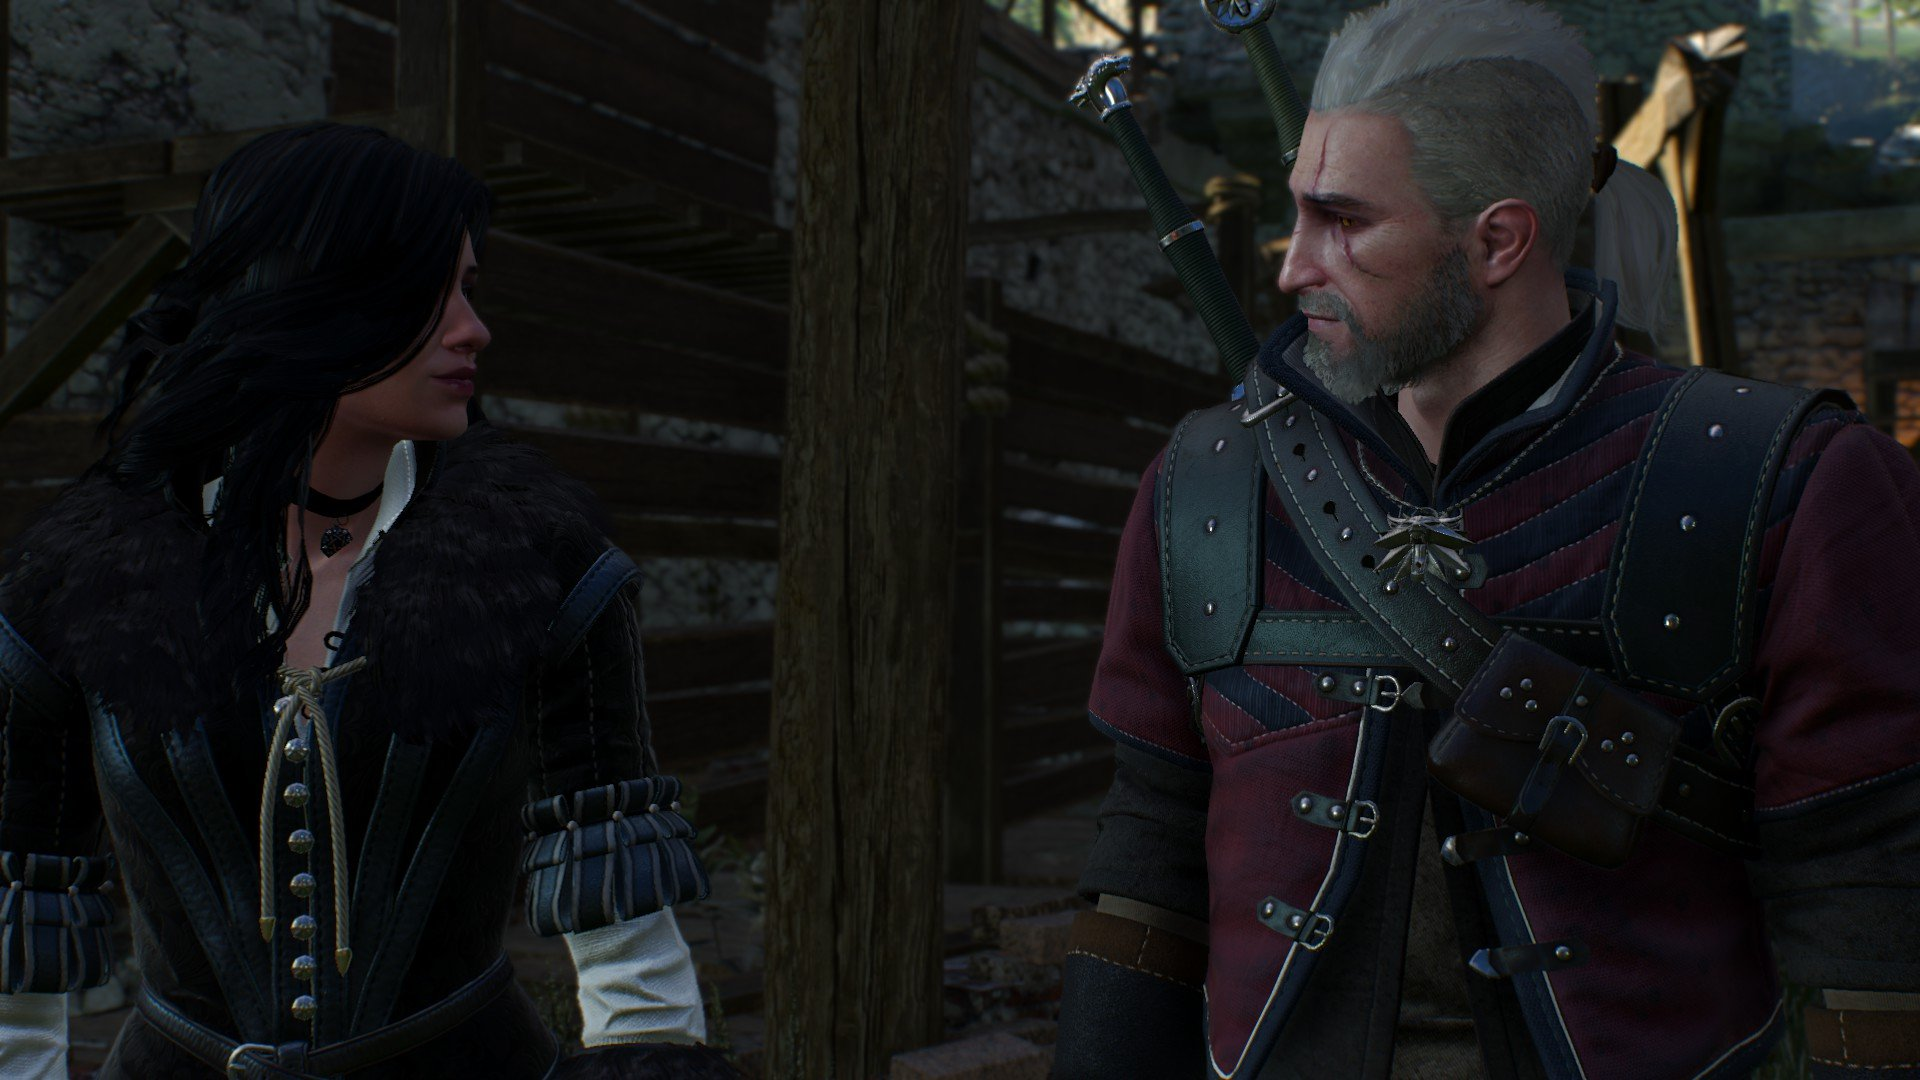 Yennefer of Vengerberg Romance Guide The Witcher 3